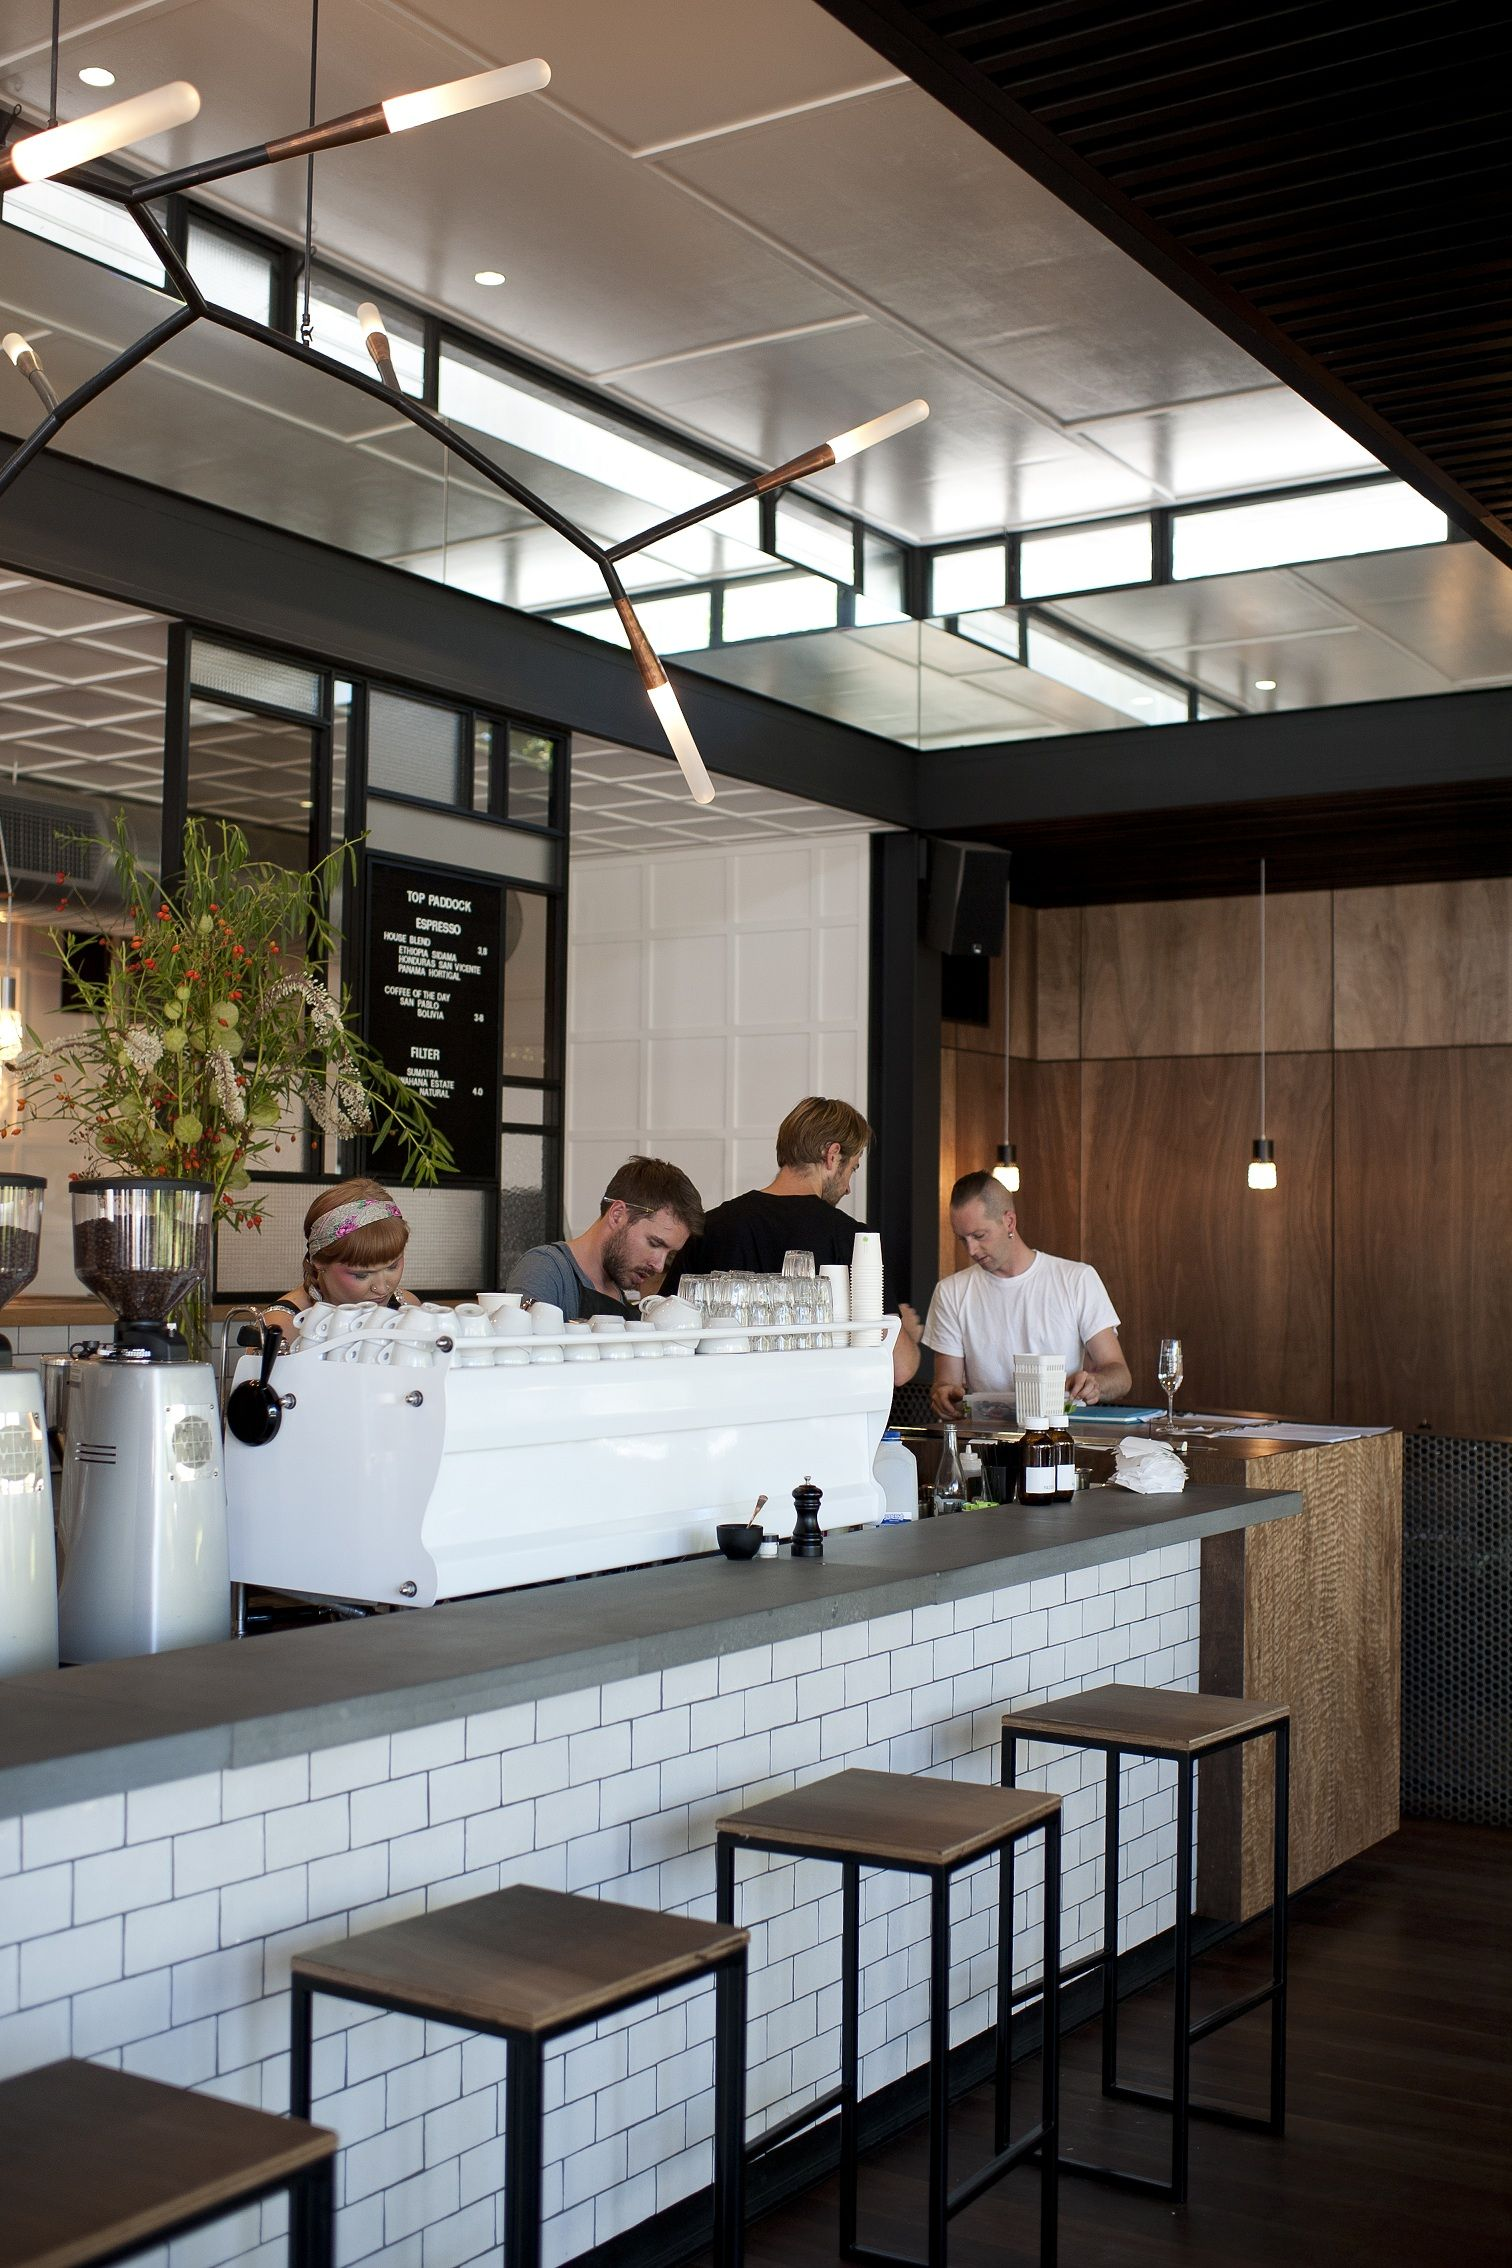 Top paddock melbourne is design coffee shop in cafe